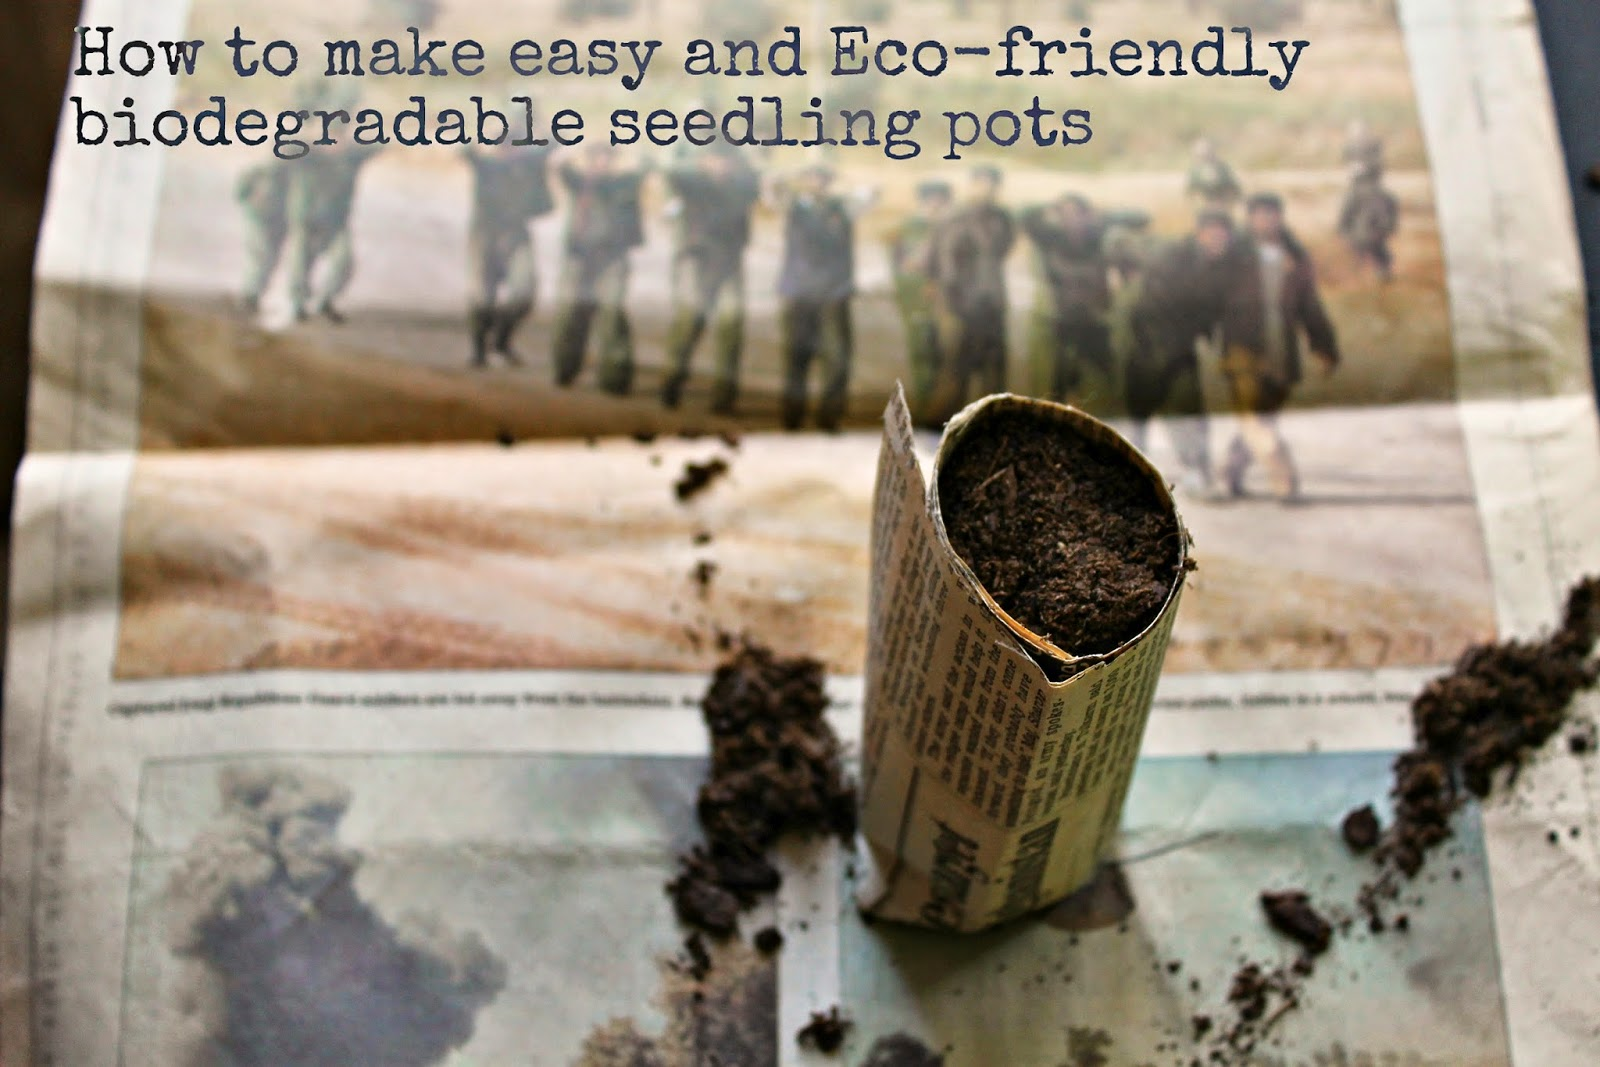 How to make Biodegradable Seed Pots with Newspaper